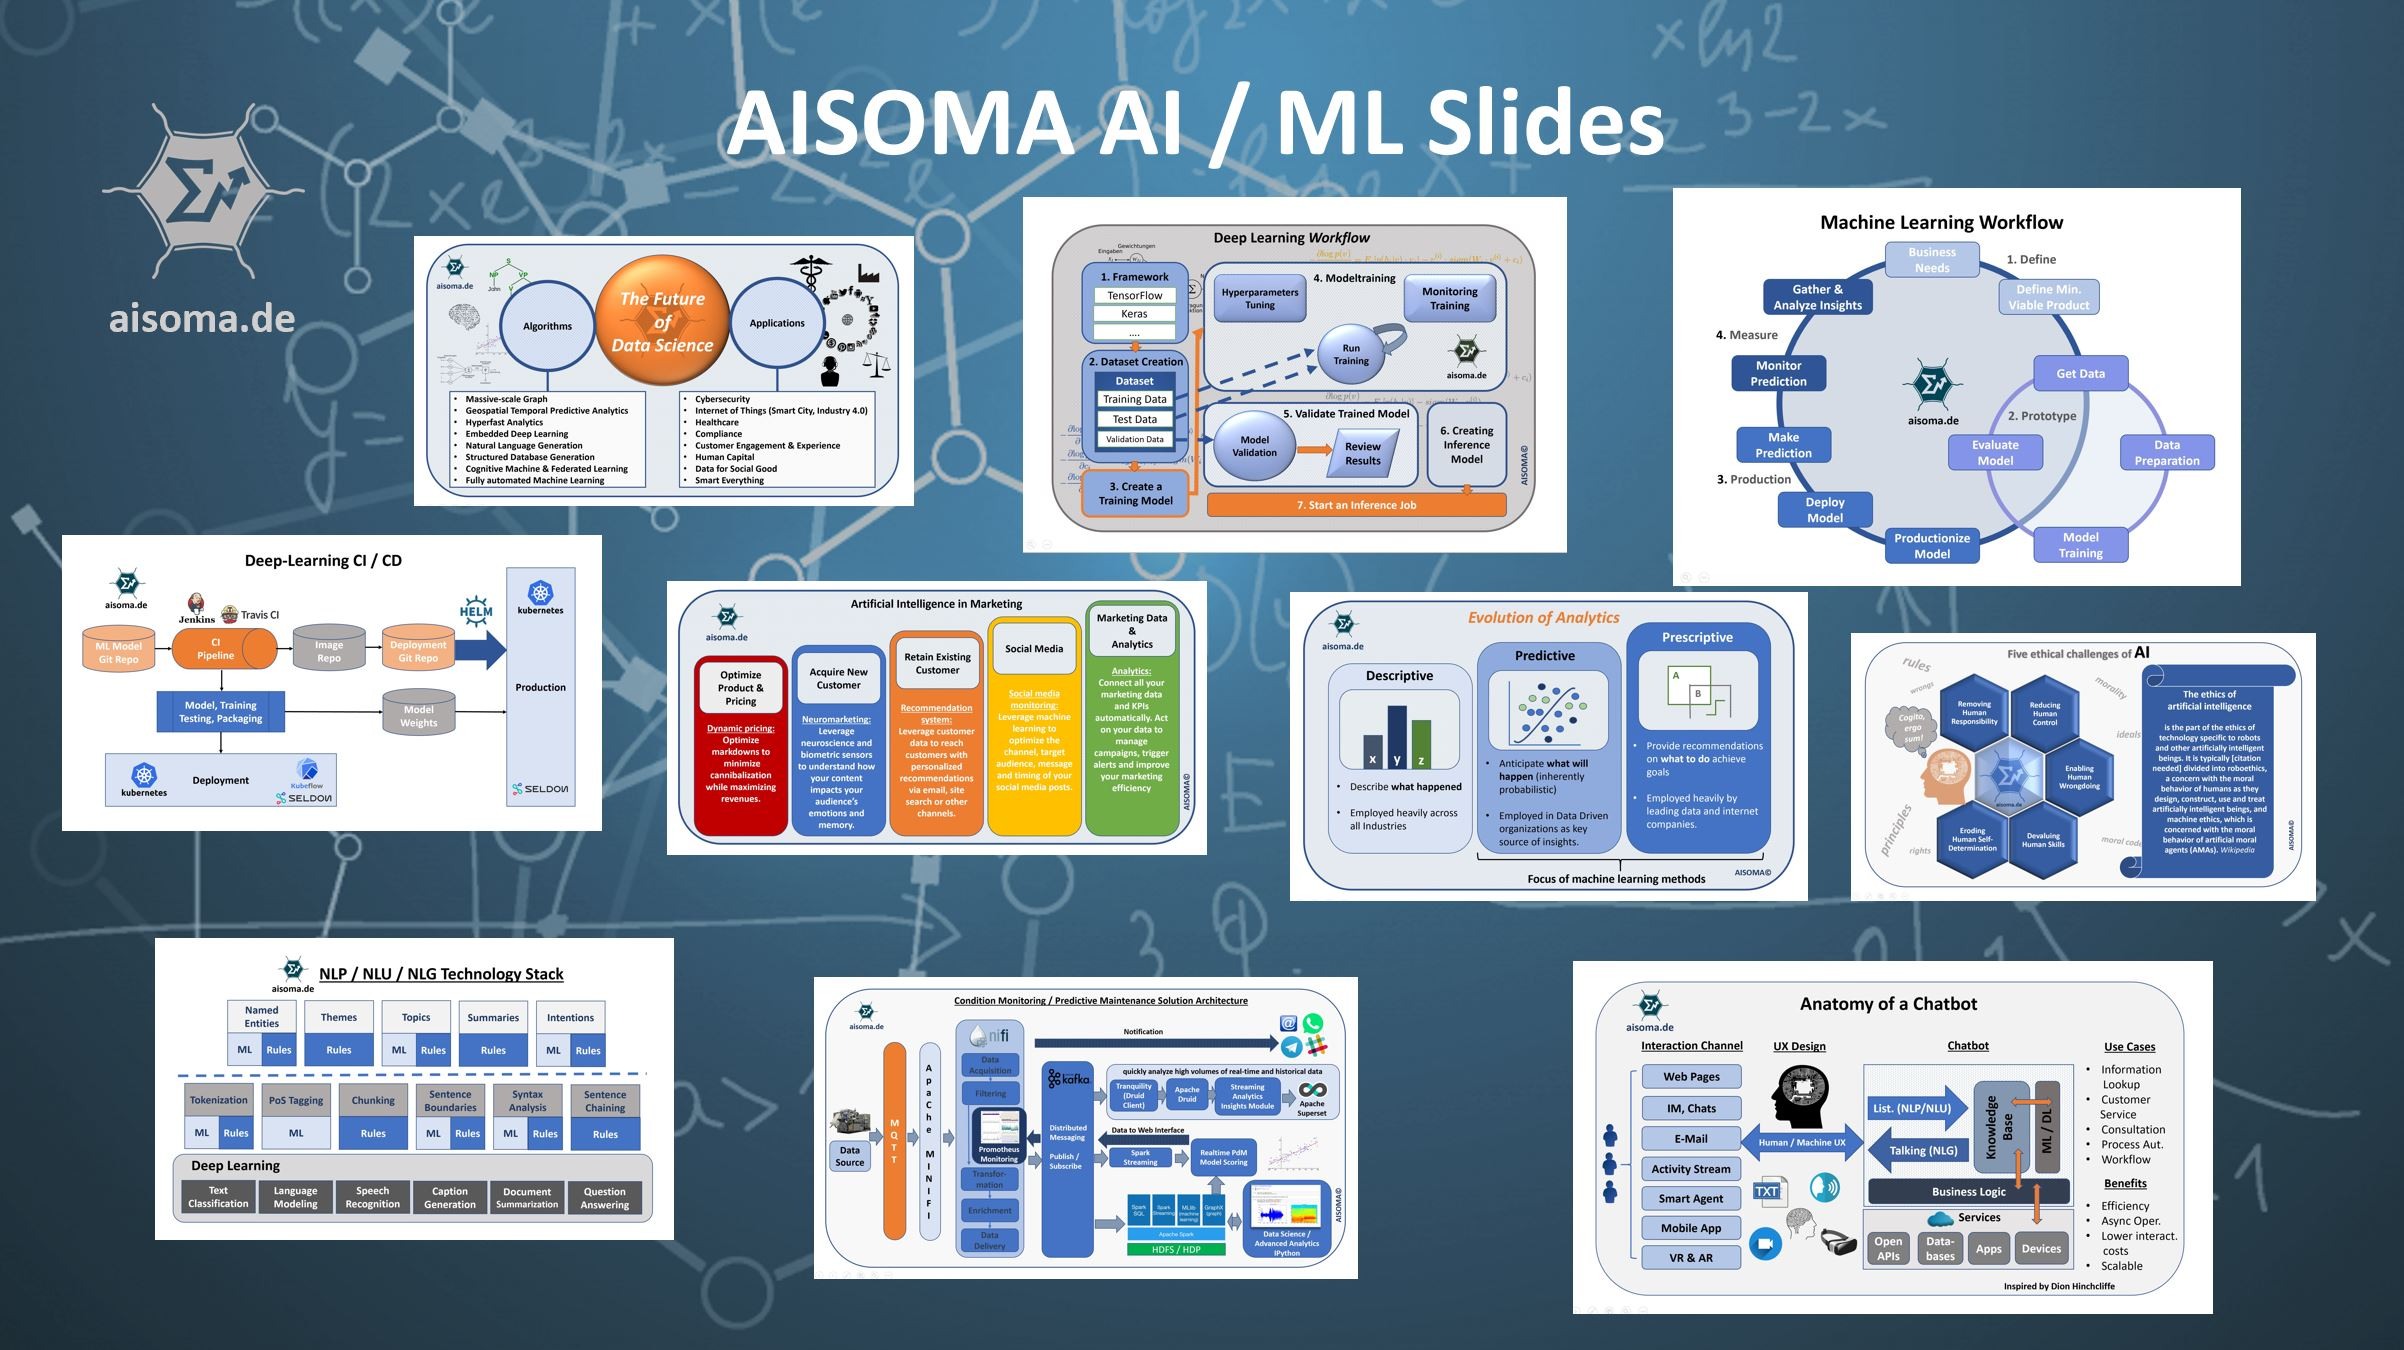 AISOMA AI & ML Slides